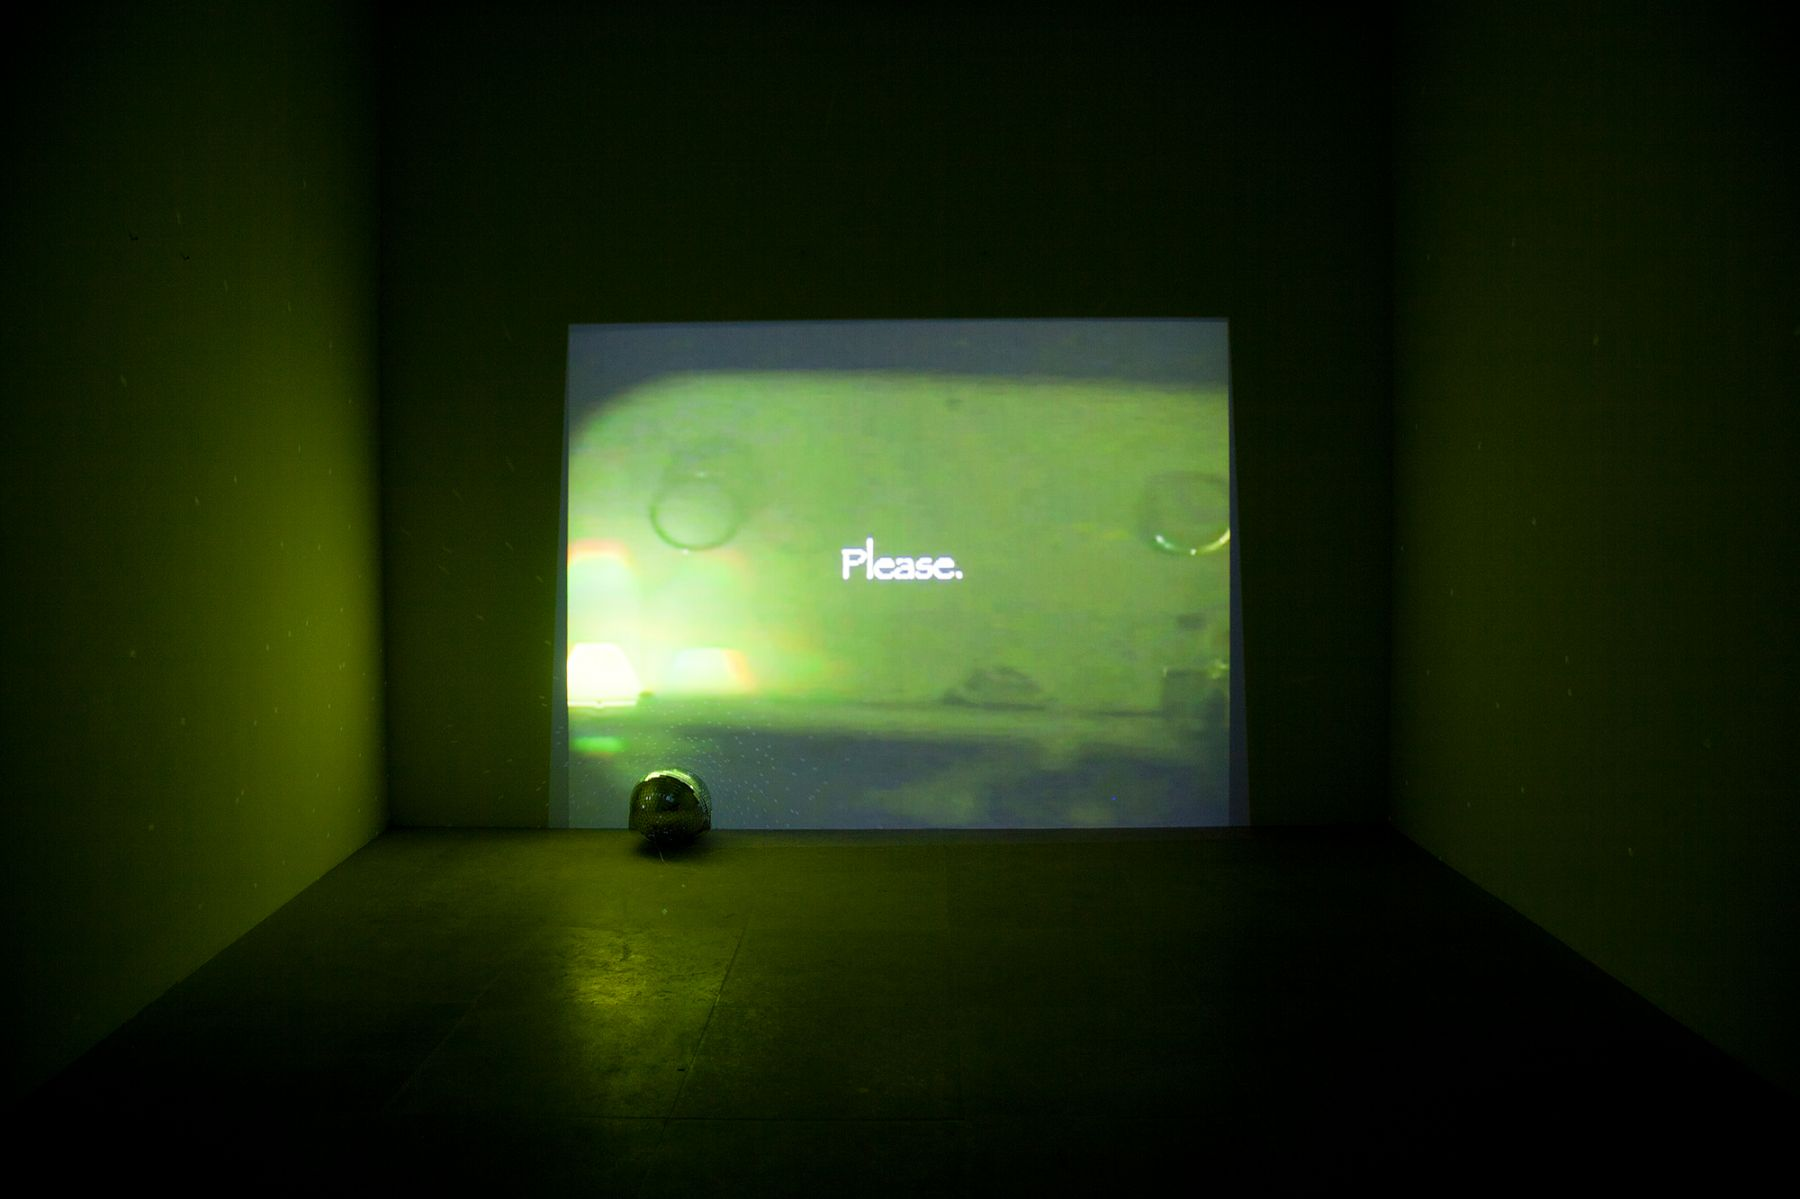 Trisha Baga, Flatlands, 2011, Video and disco ball, Dimensions variable